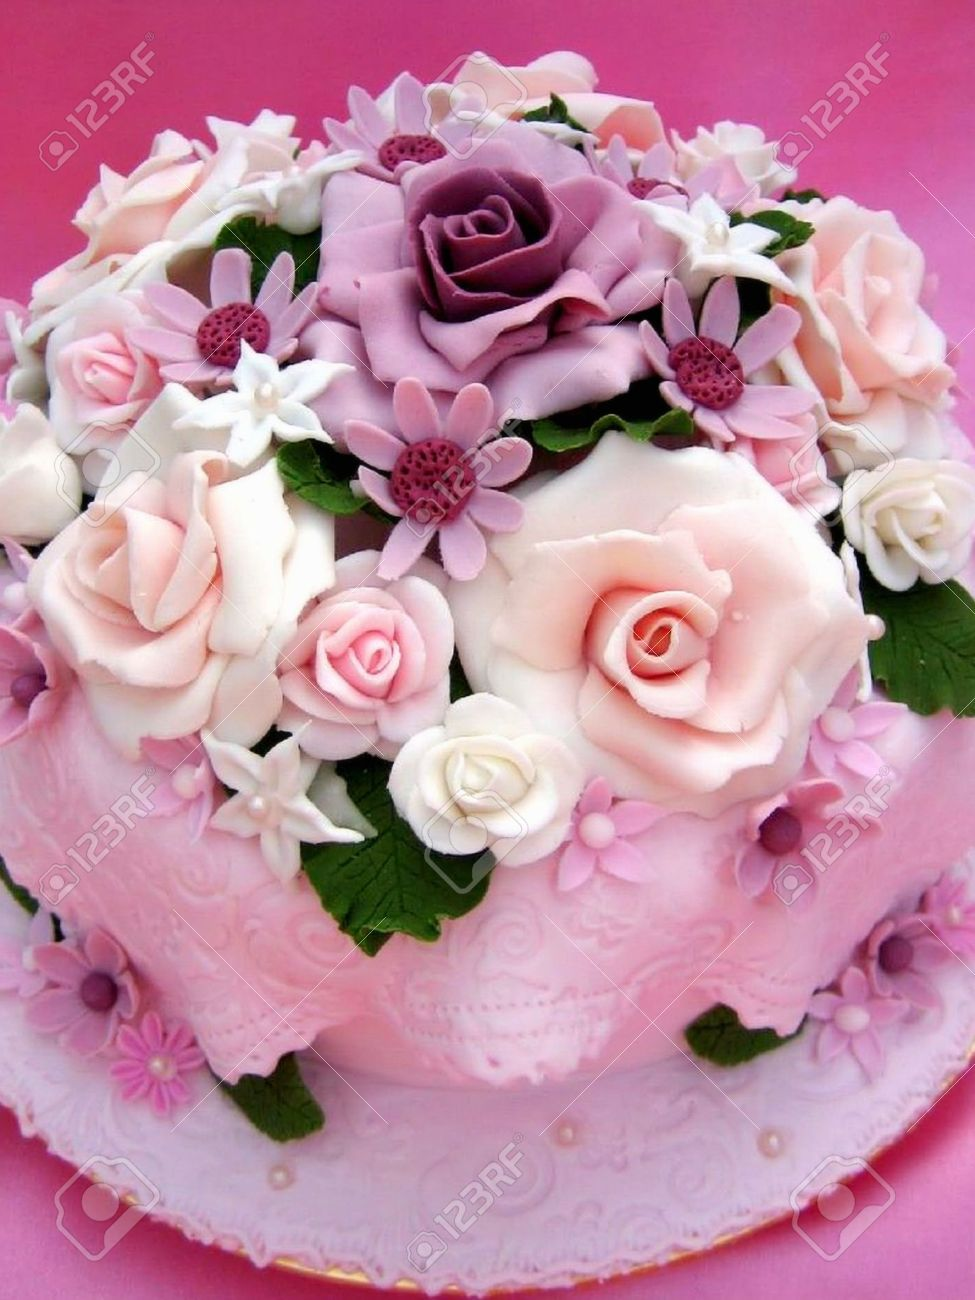 Flower Birthday Cake Images Savingourboysfo